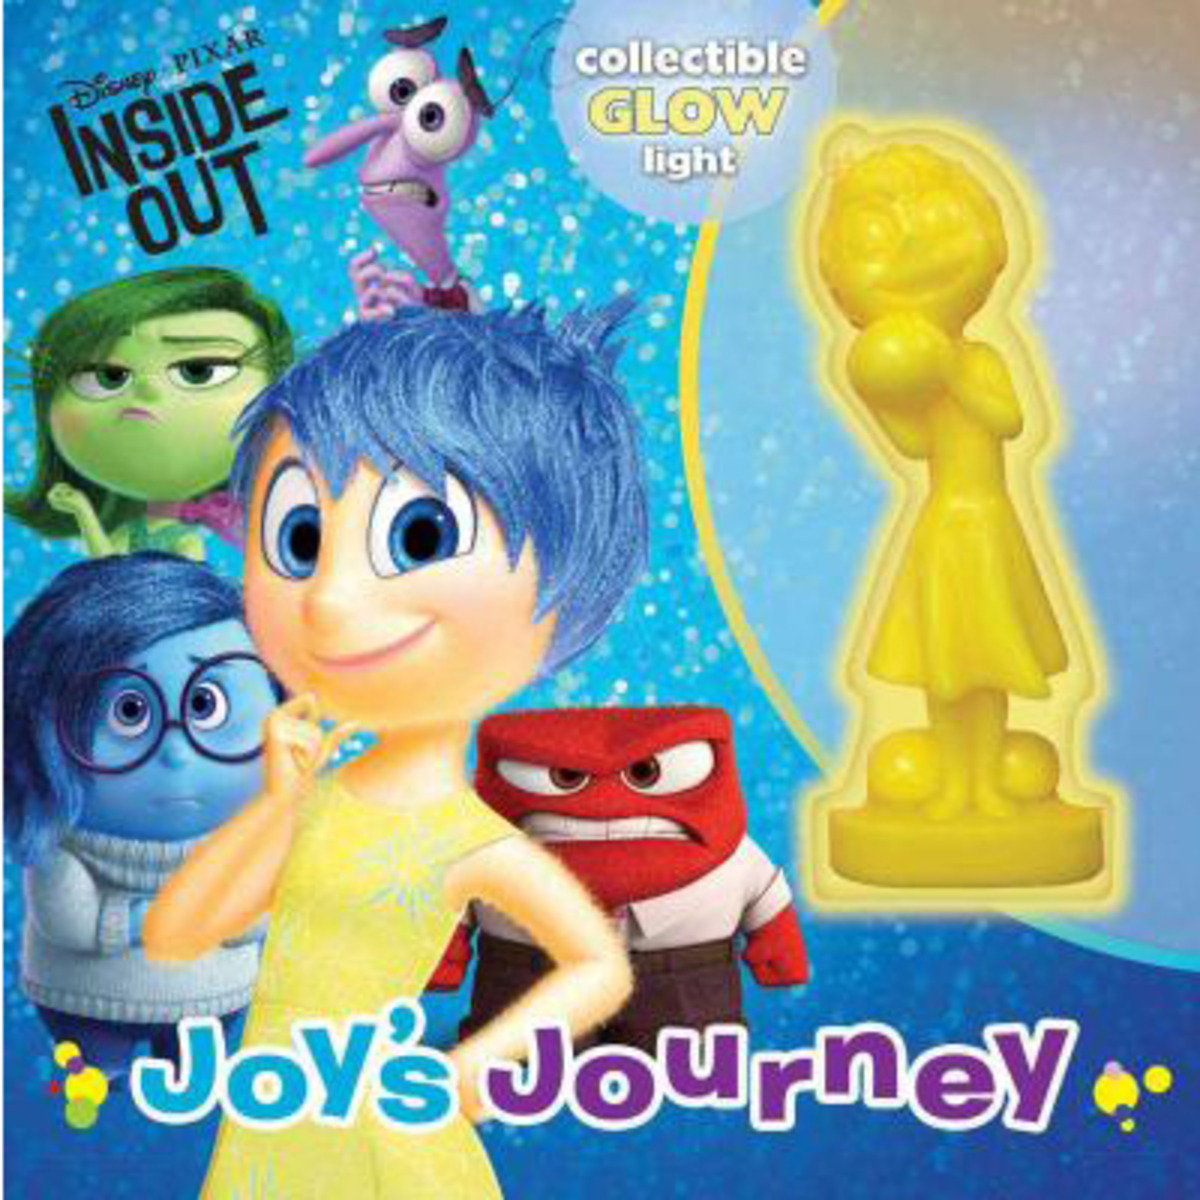 Disney Pixar Inside Out: Joy's Journey